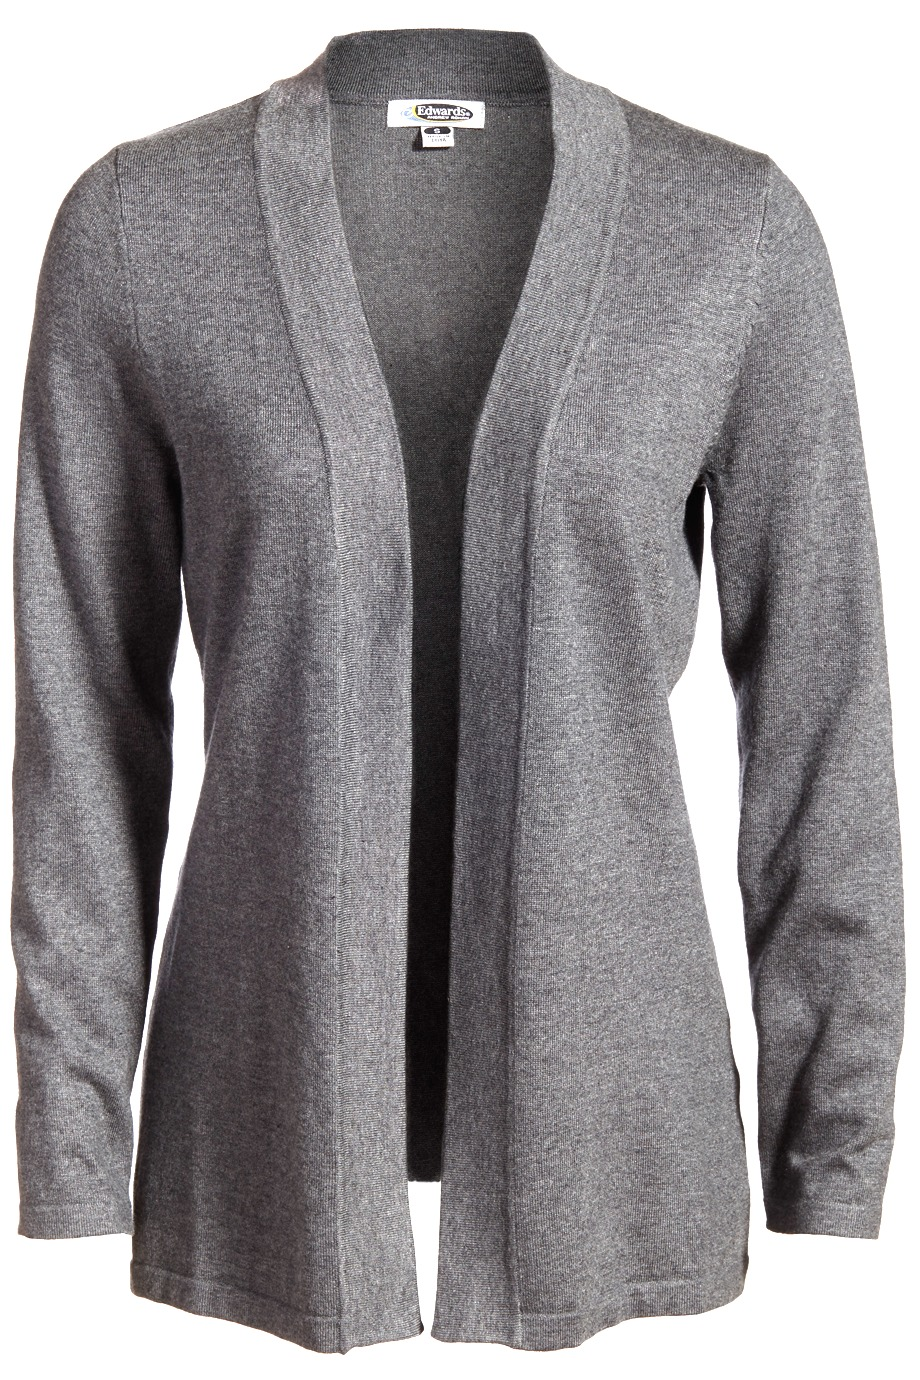 LLE7056-Open cardigan has a flattering silhouette with a smooth and easy drape